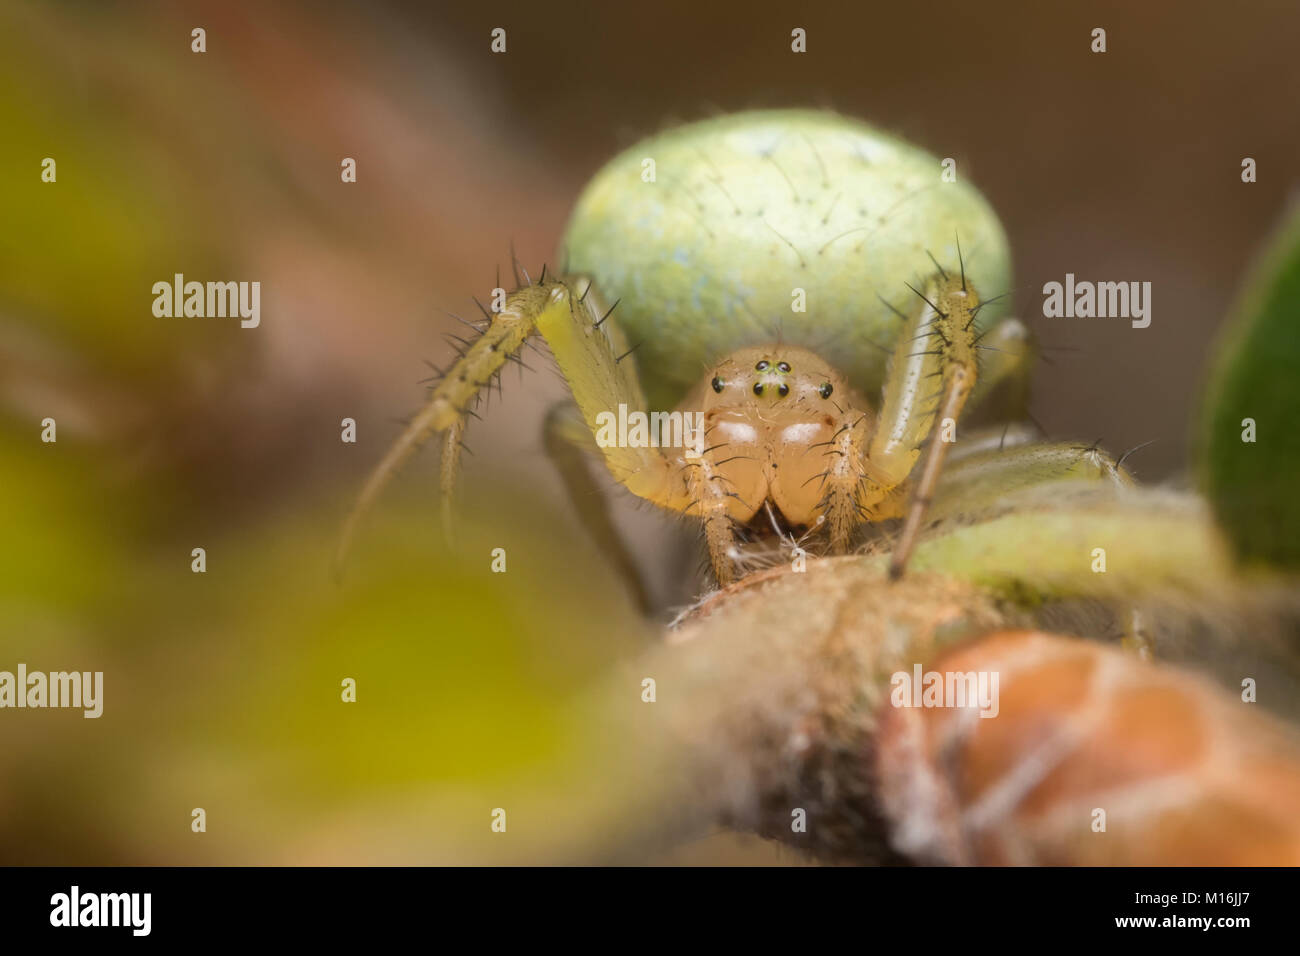 Cucumber Green Orb Spider (Araniella sp.) resting on the branch of a Beech tree. Cahir, Tipperary, Ireland. - Stock Image